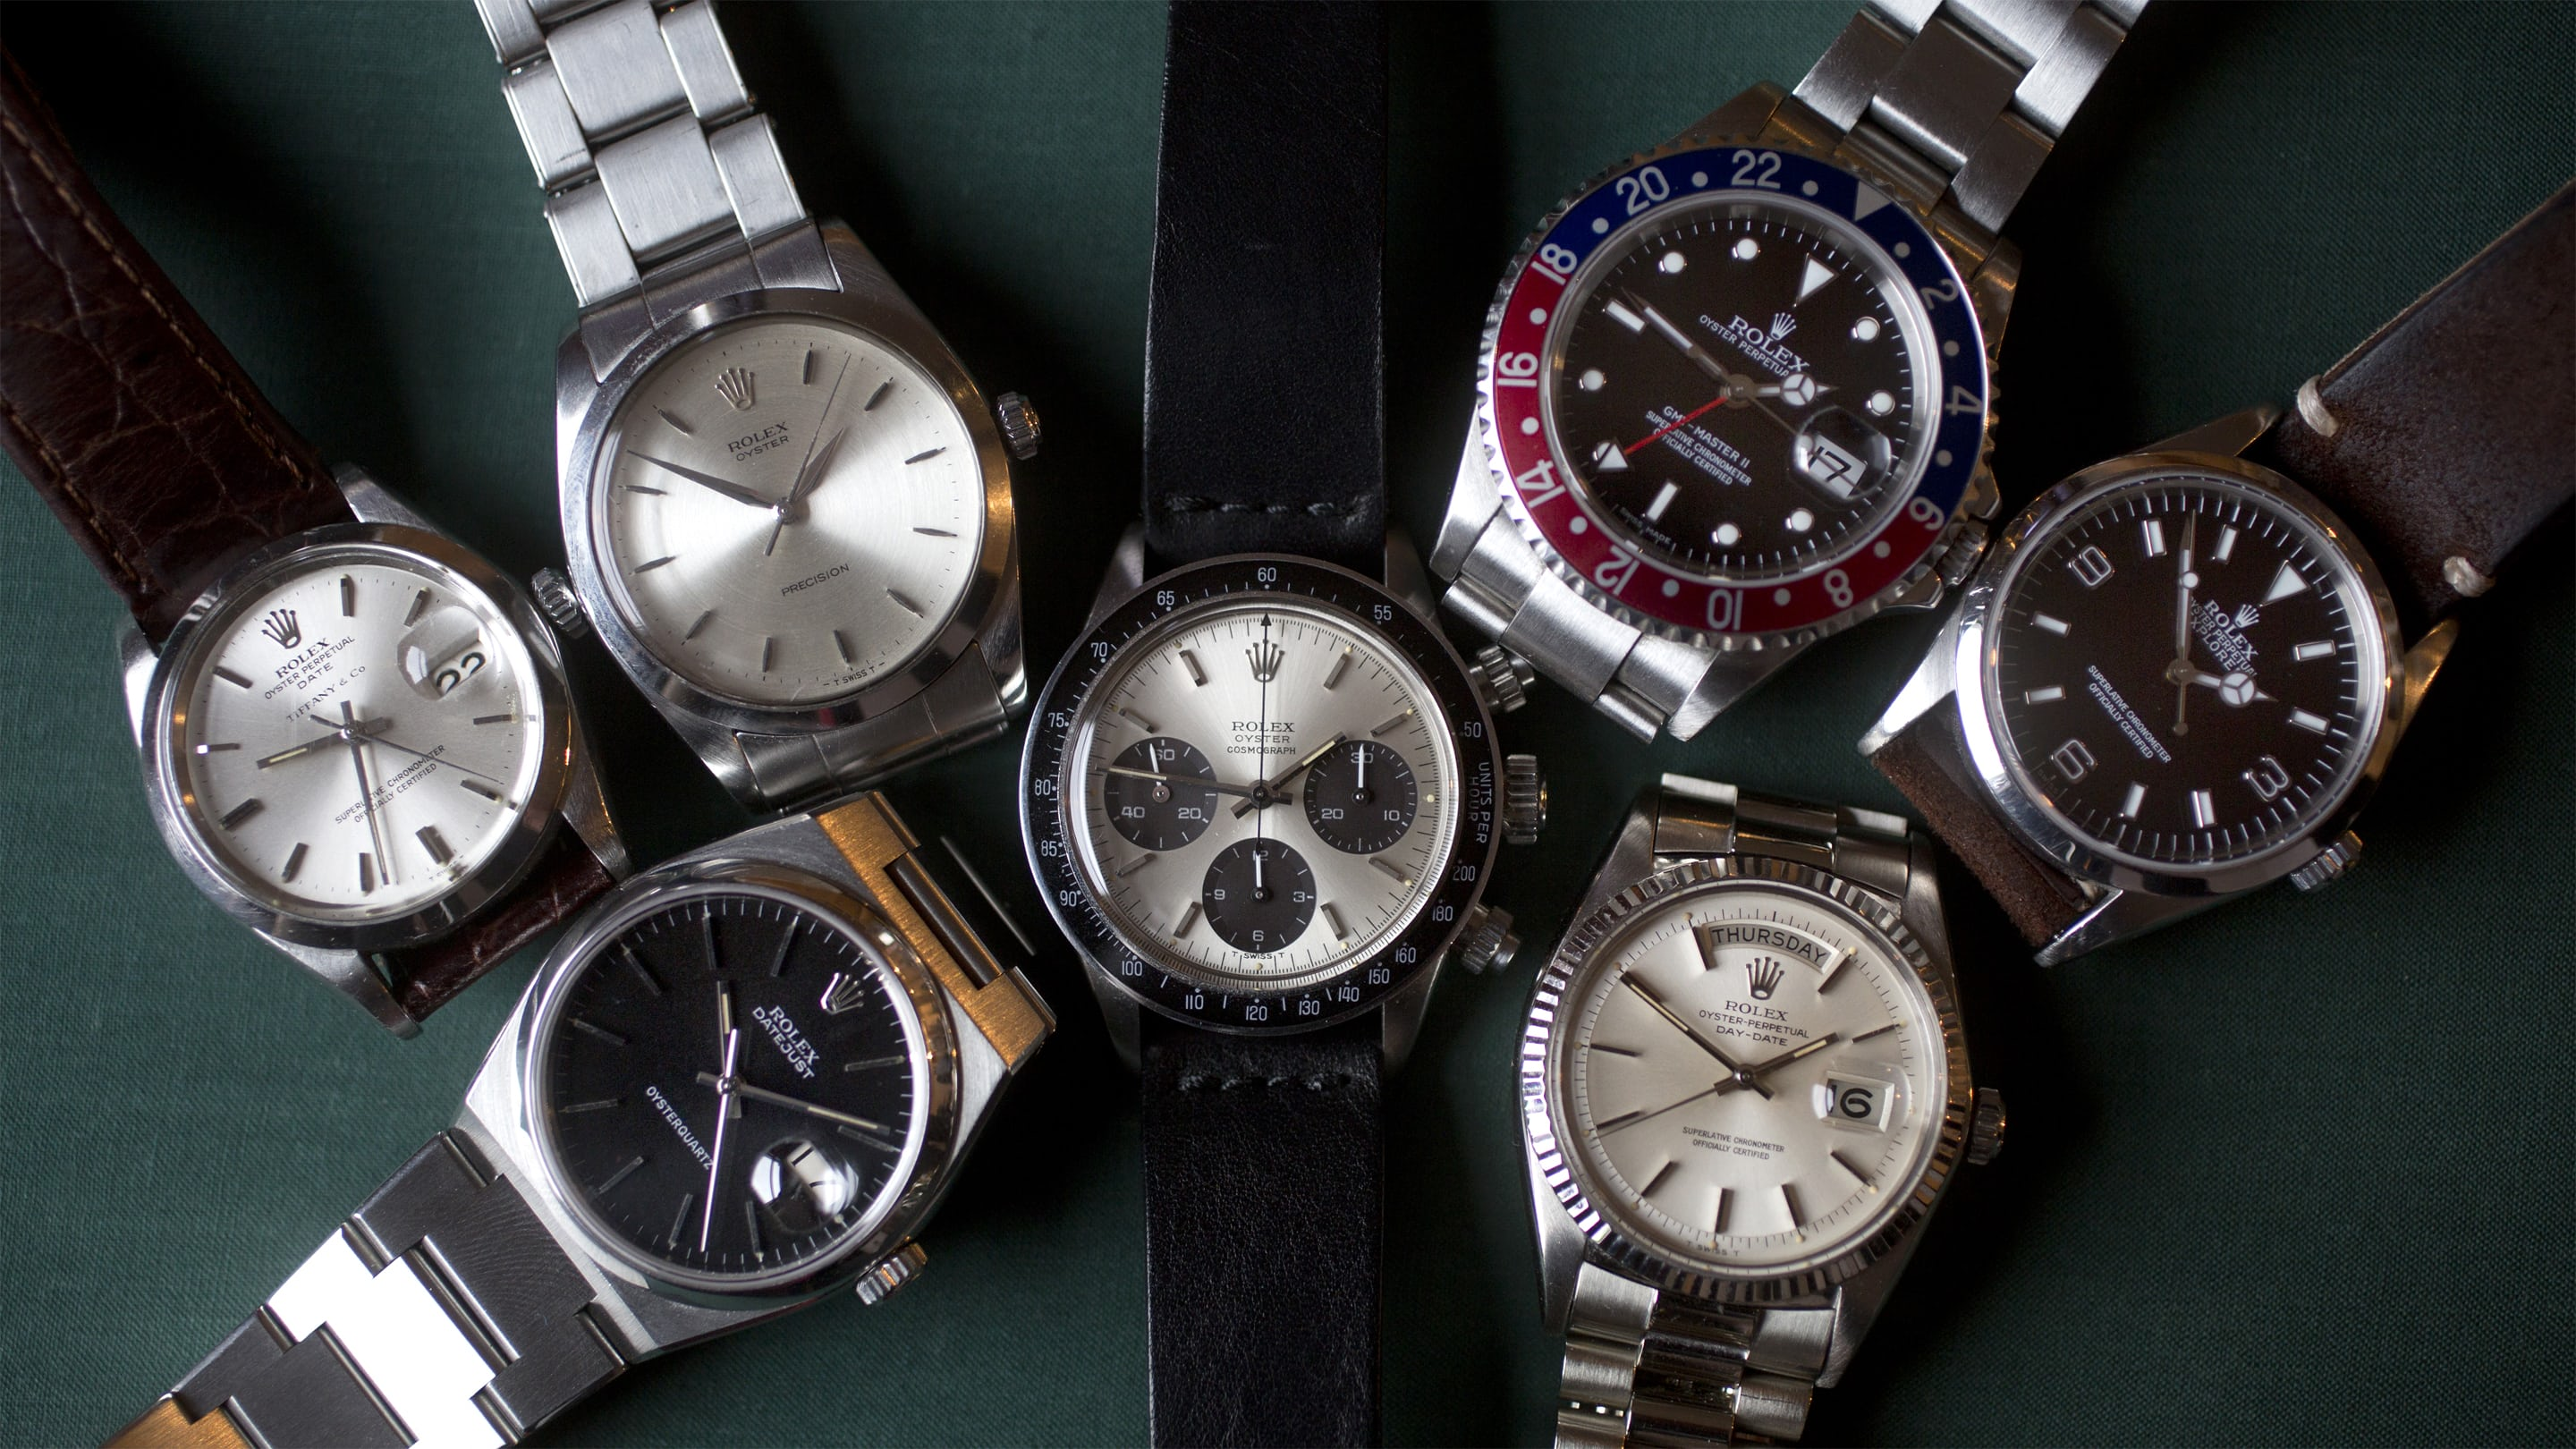 relates to Pursuits Weekly: Reasons to Buy a New Watch Instead of Vintage